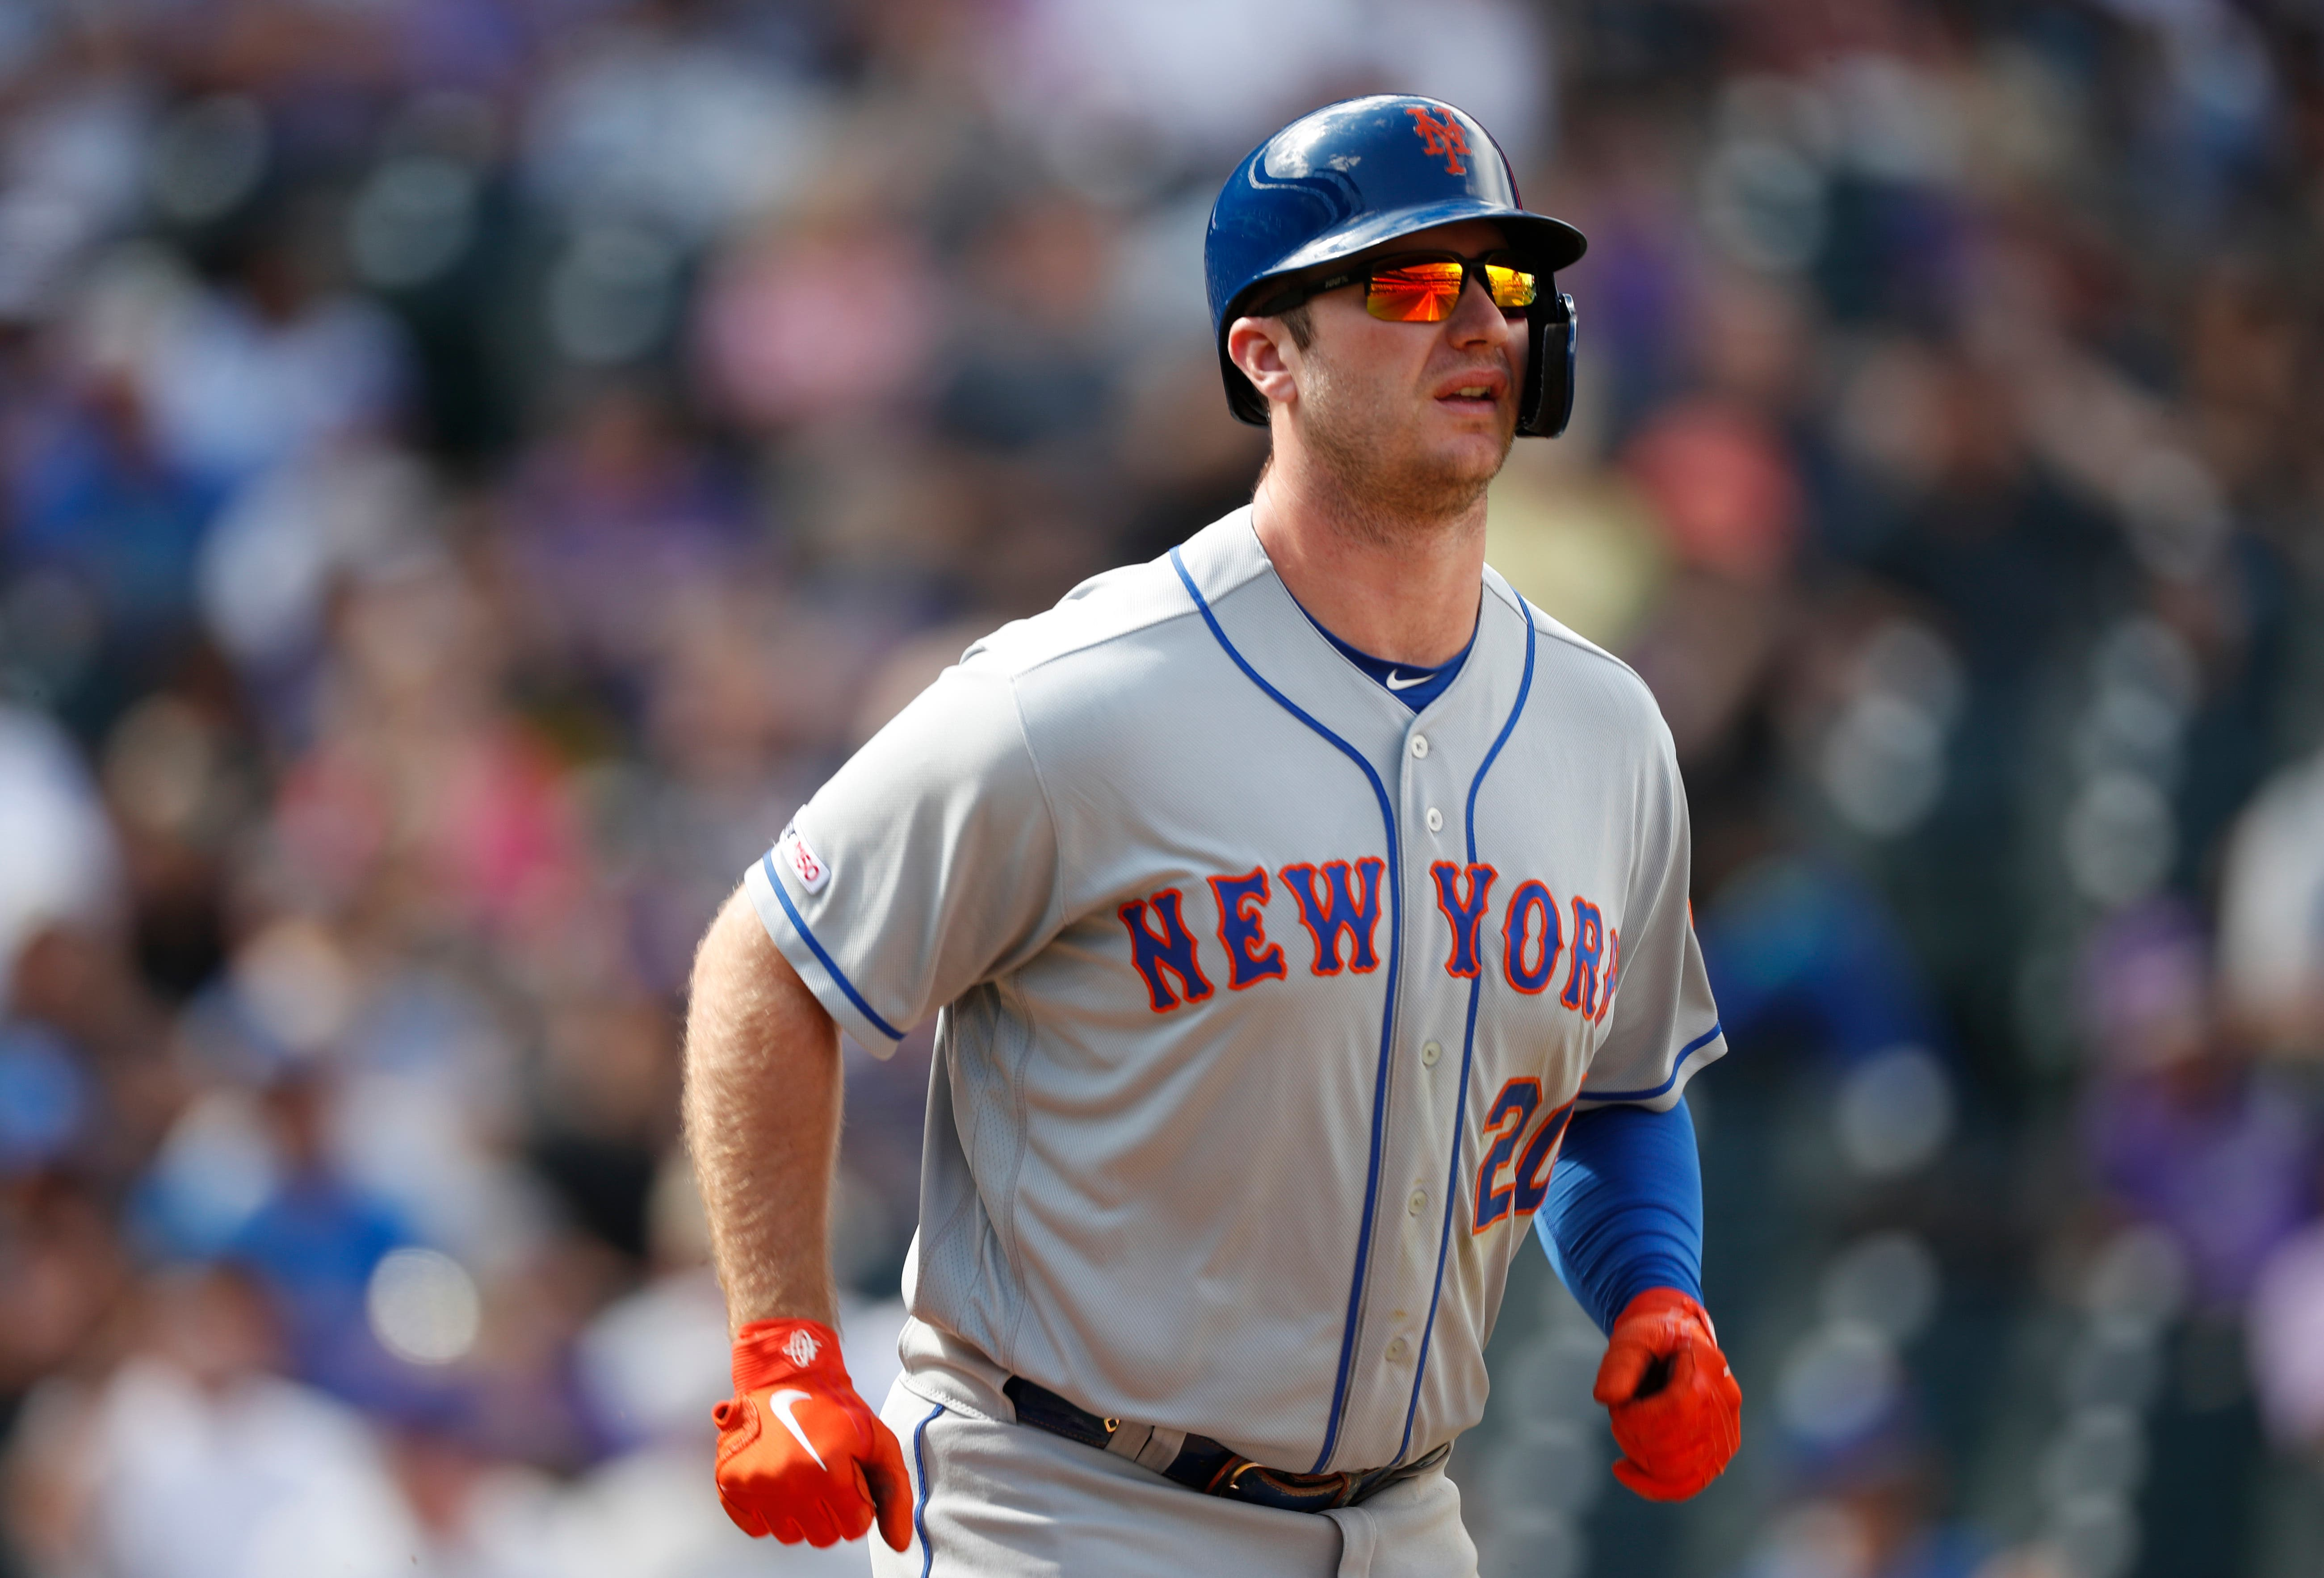 New York Mets' Pete Alonso heads to first base after being hit by Colorado Rockies starting pitcher Jeff Hoffman in the third inning of a baseball game Wednesday, Sept. 18, 2019, in Denver. (AP Photo/David Zalubowski)